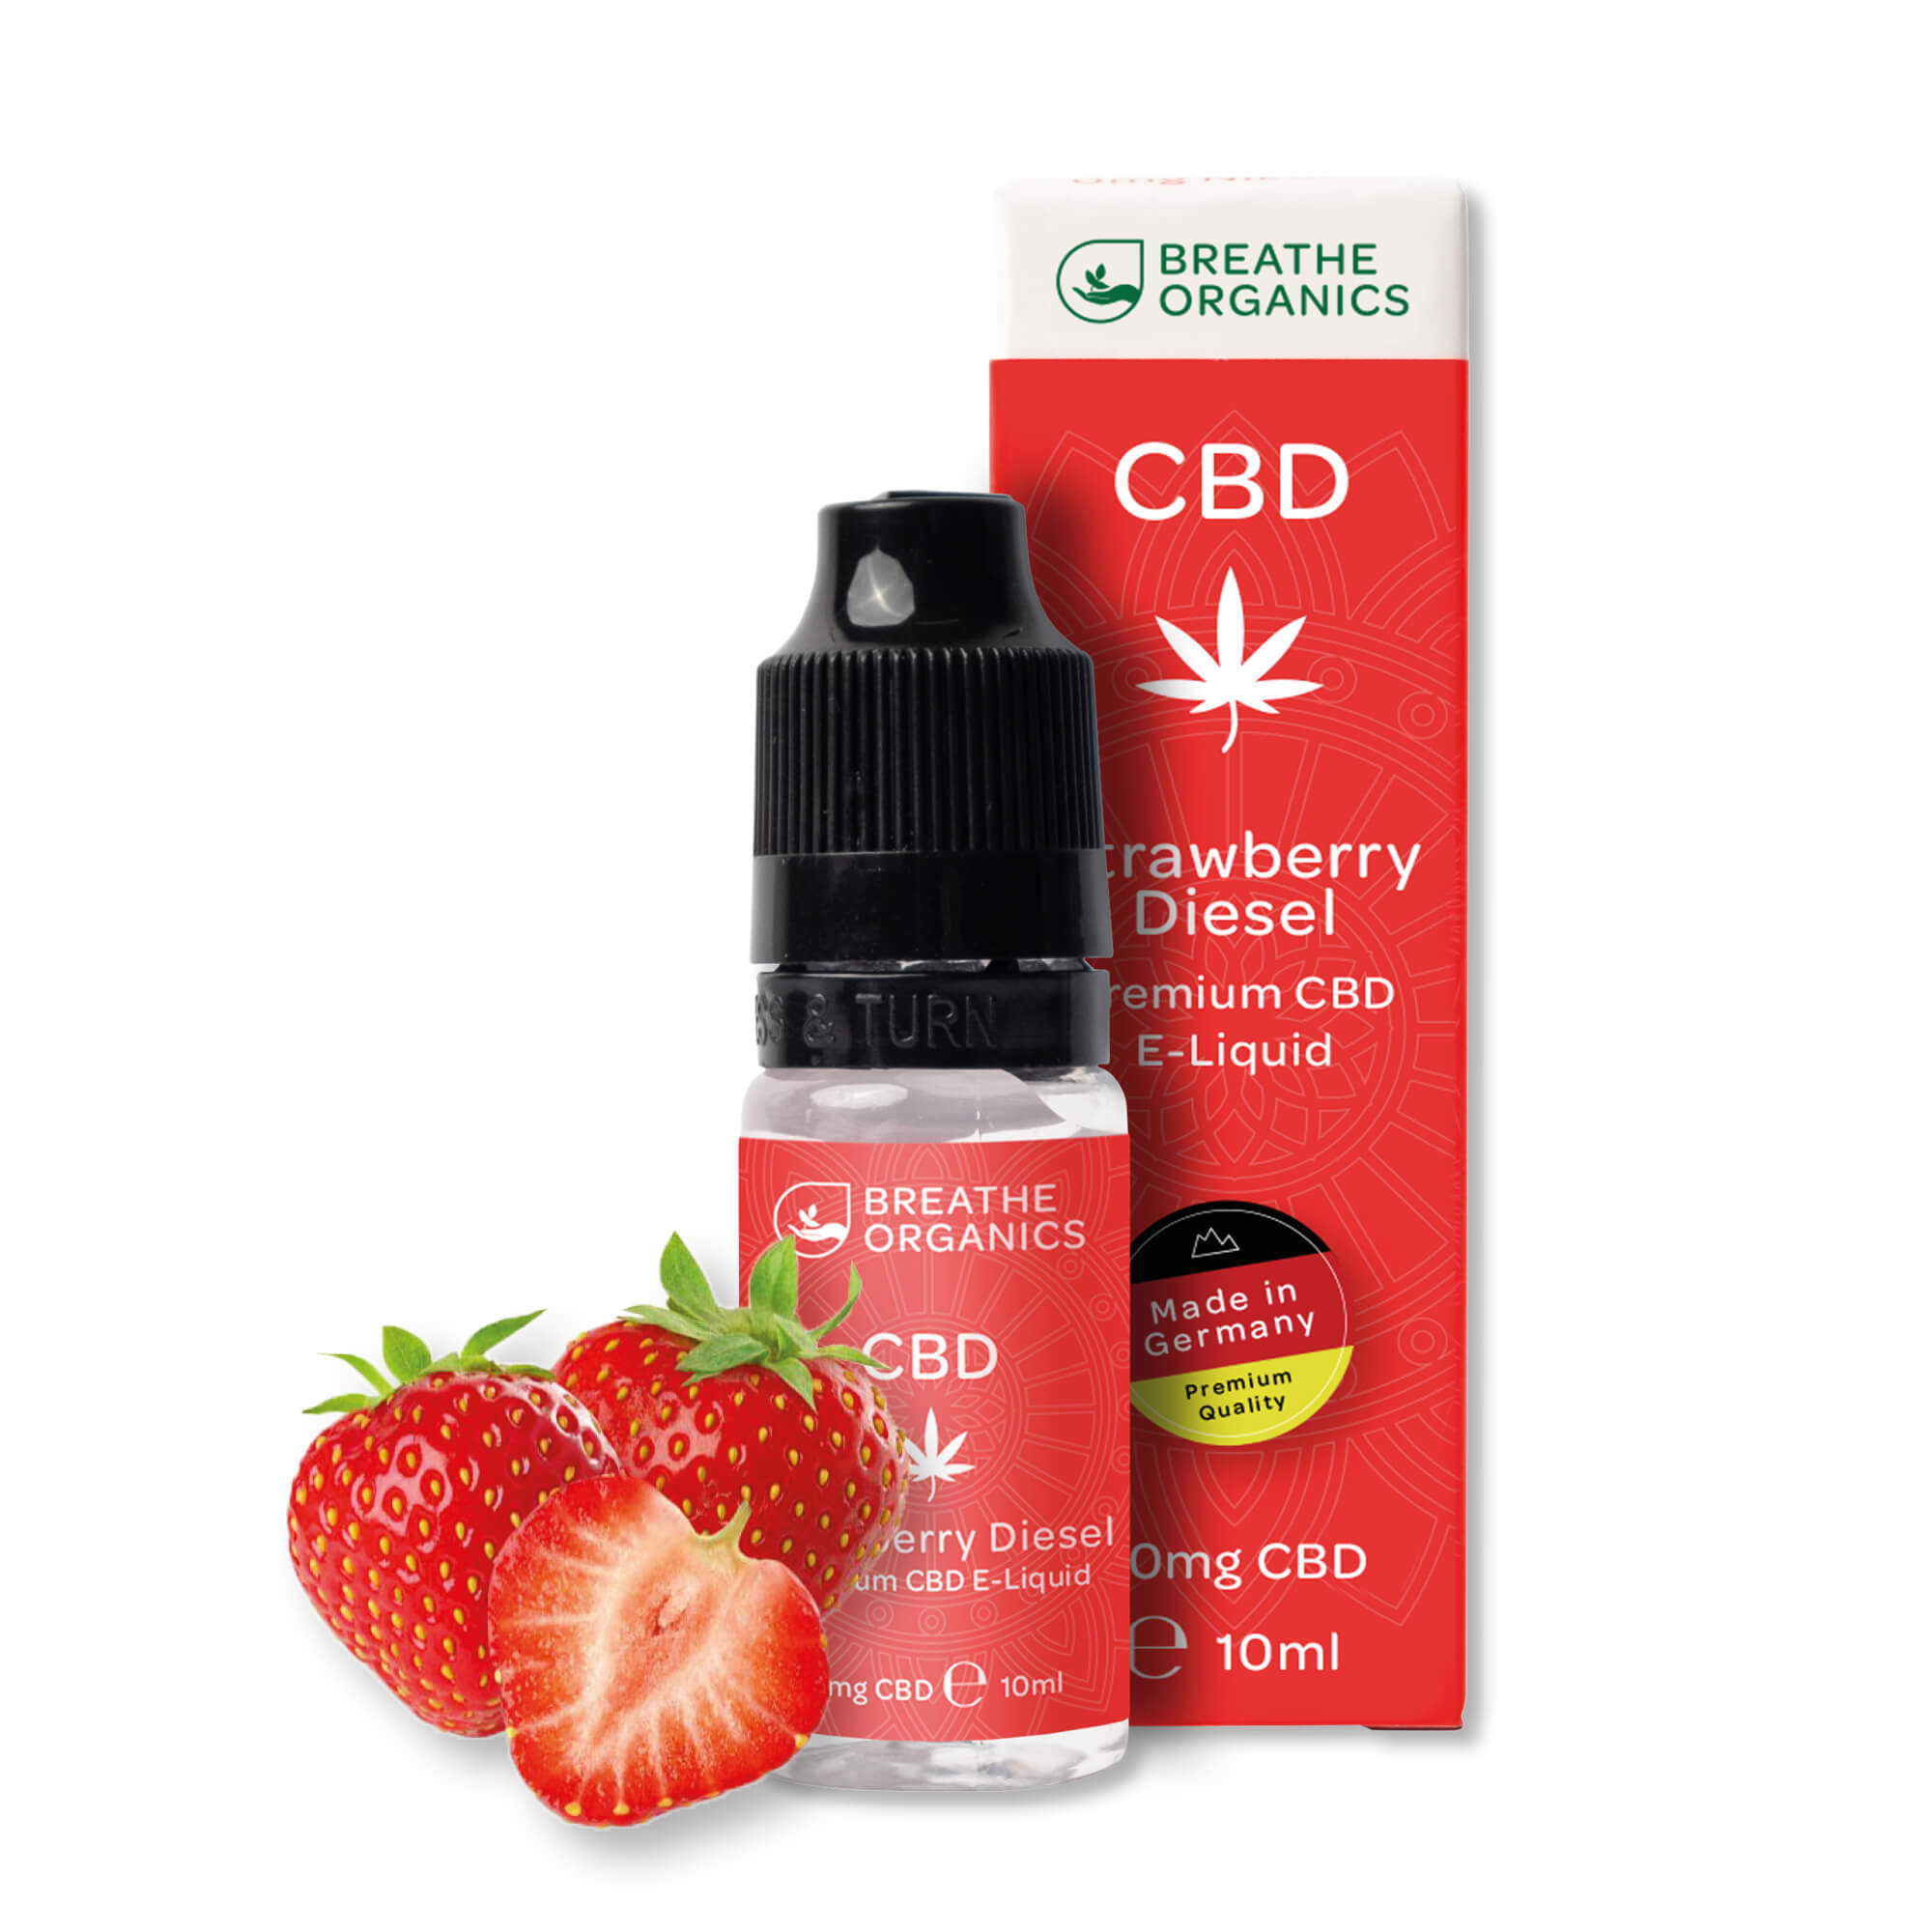 Breathe Organics - Premium CBD E-Liquid Strawberry Diesel 300mg